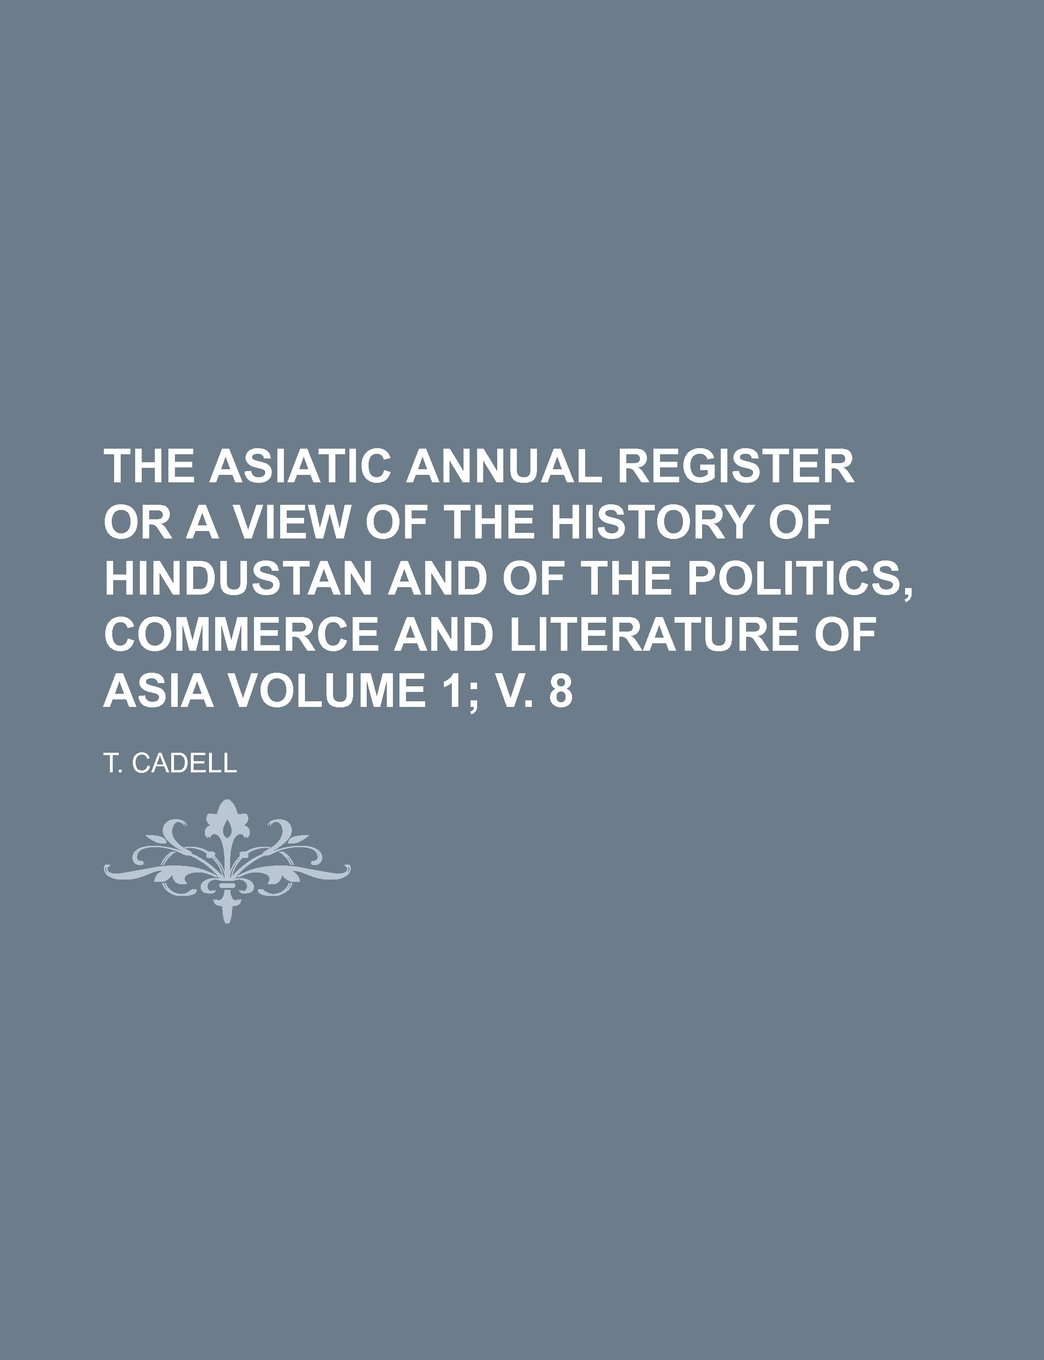 Read Online The Asiatic annual register or a view of the history of Hindustan and of the politics, commerce and literature of Asia Volume 1; v. 8 ebook